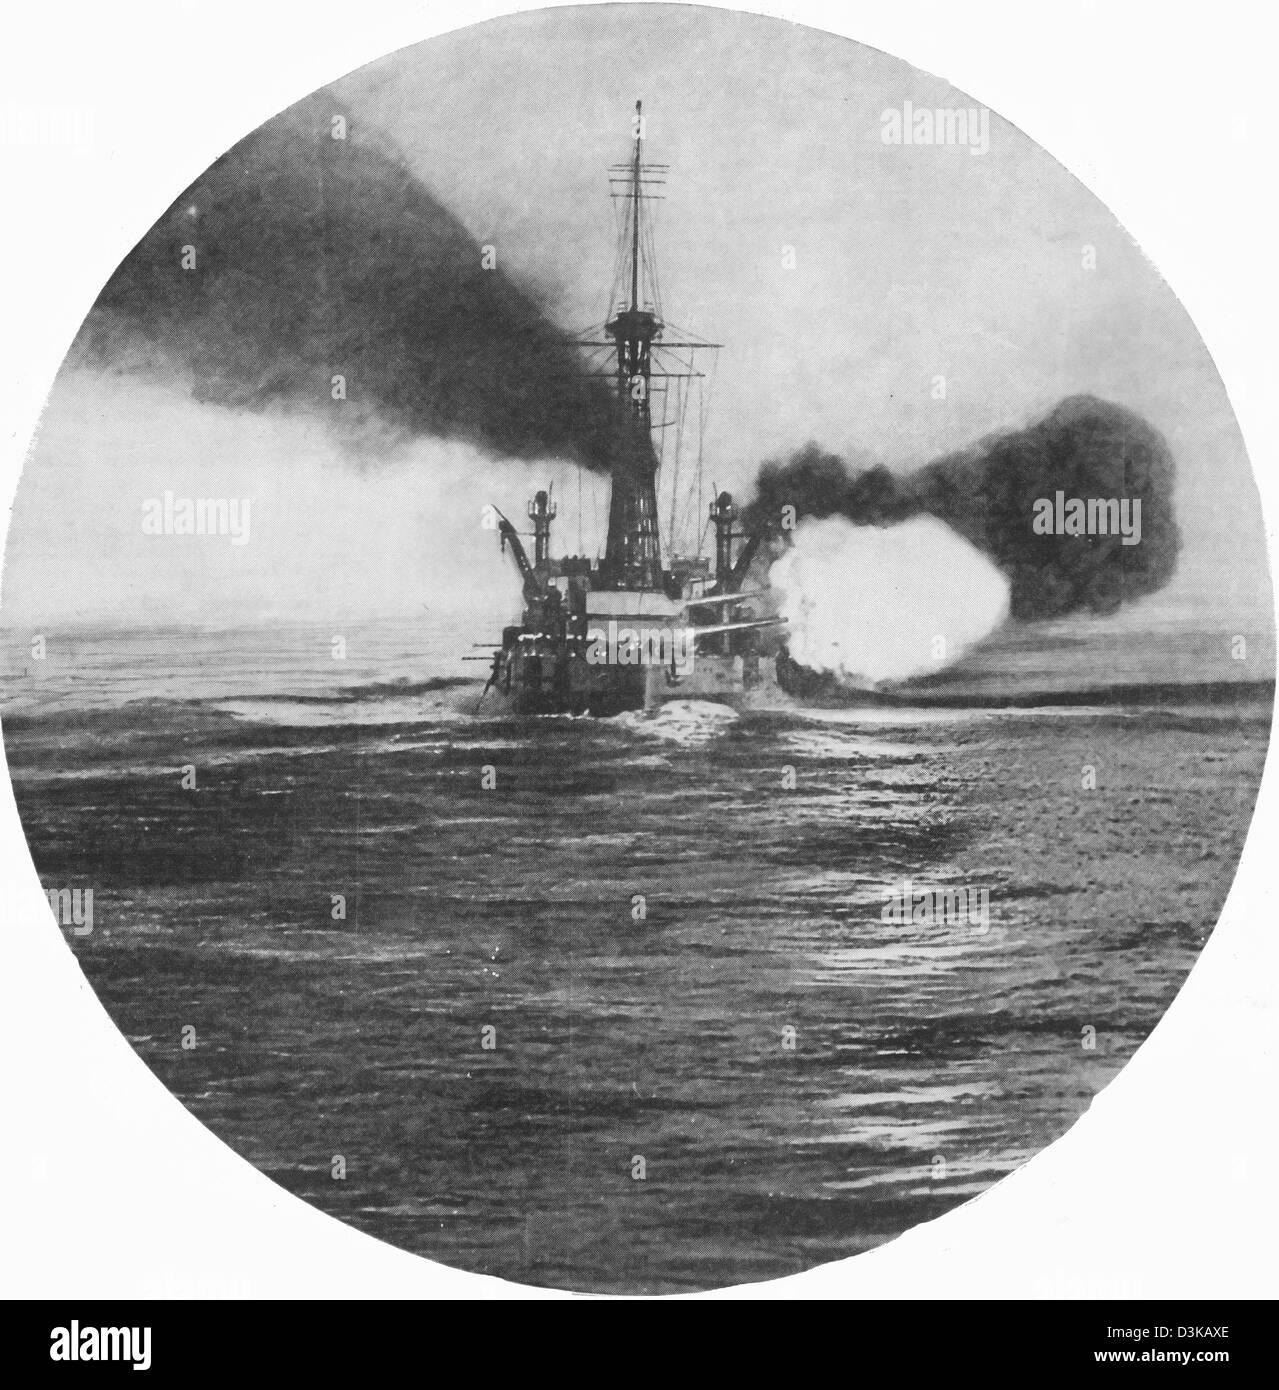 Battleship USS New York firing a broadsides near Guantanamo Bay in 1917 - Stock Image